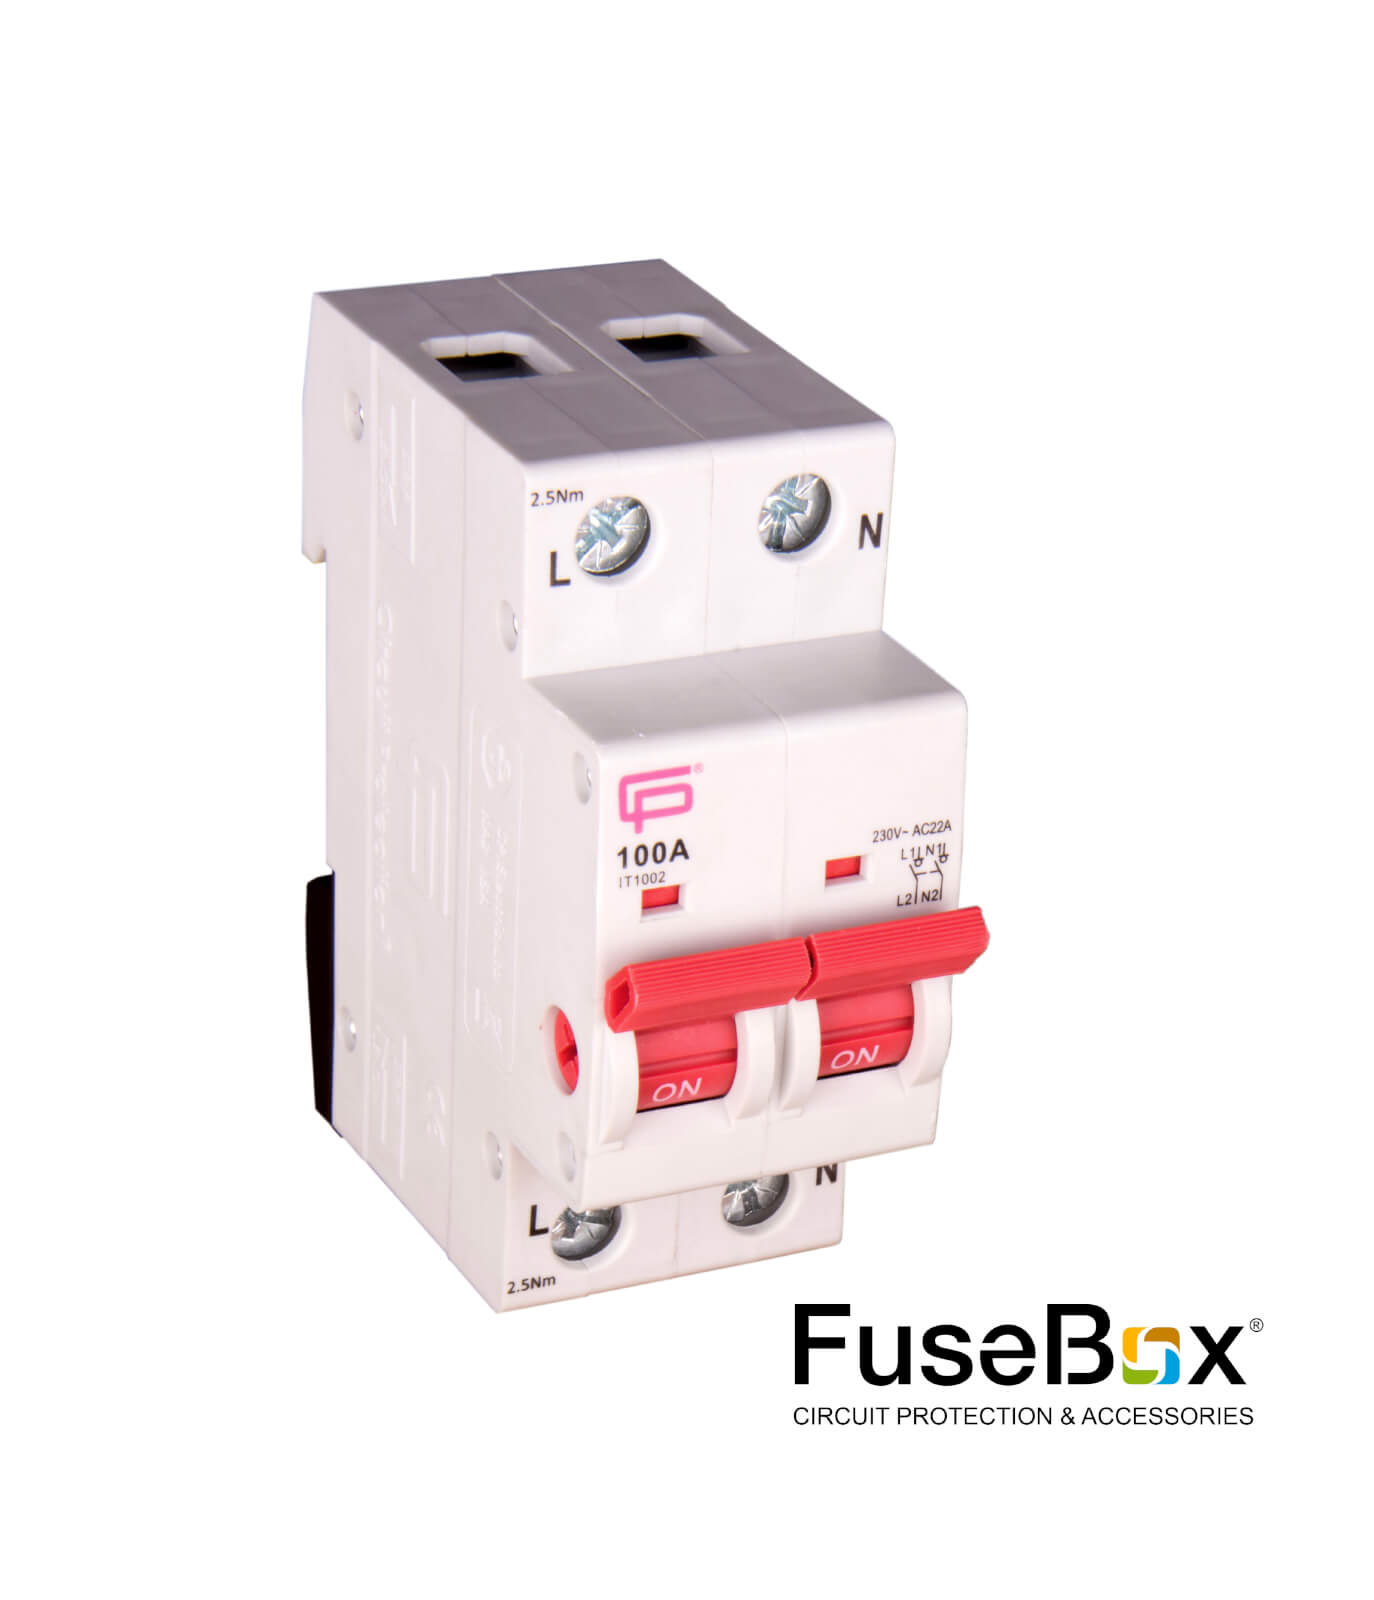 Cp Electric Fusebox Curcuit Protection Accessories Fuse Box Switch 100a 2 Pole Main